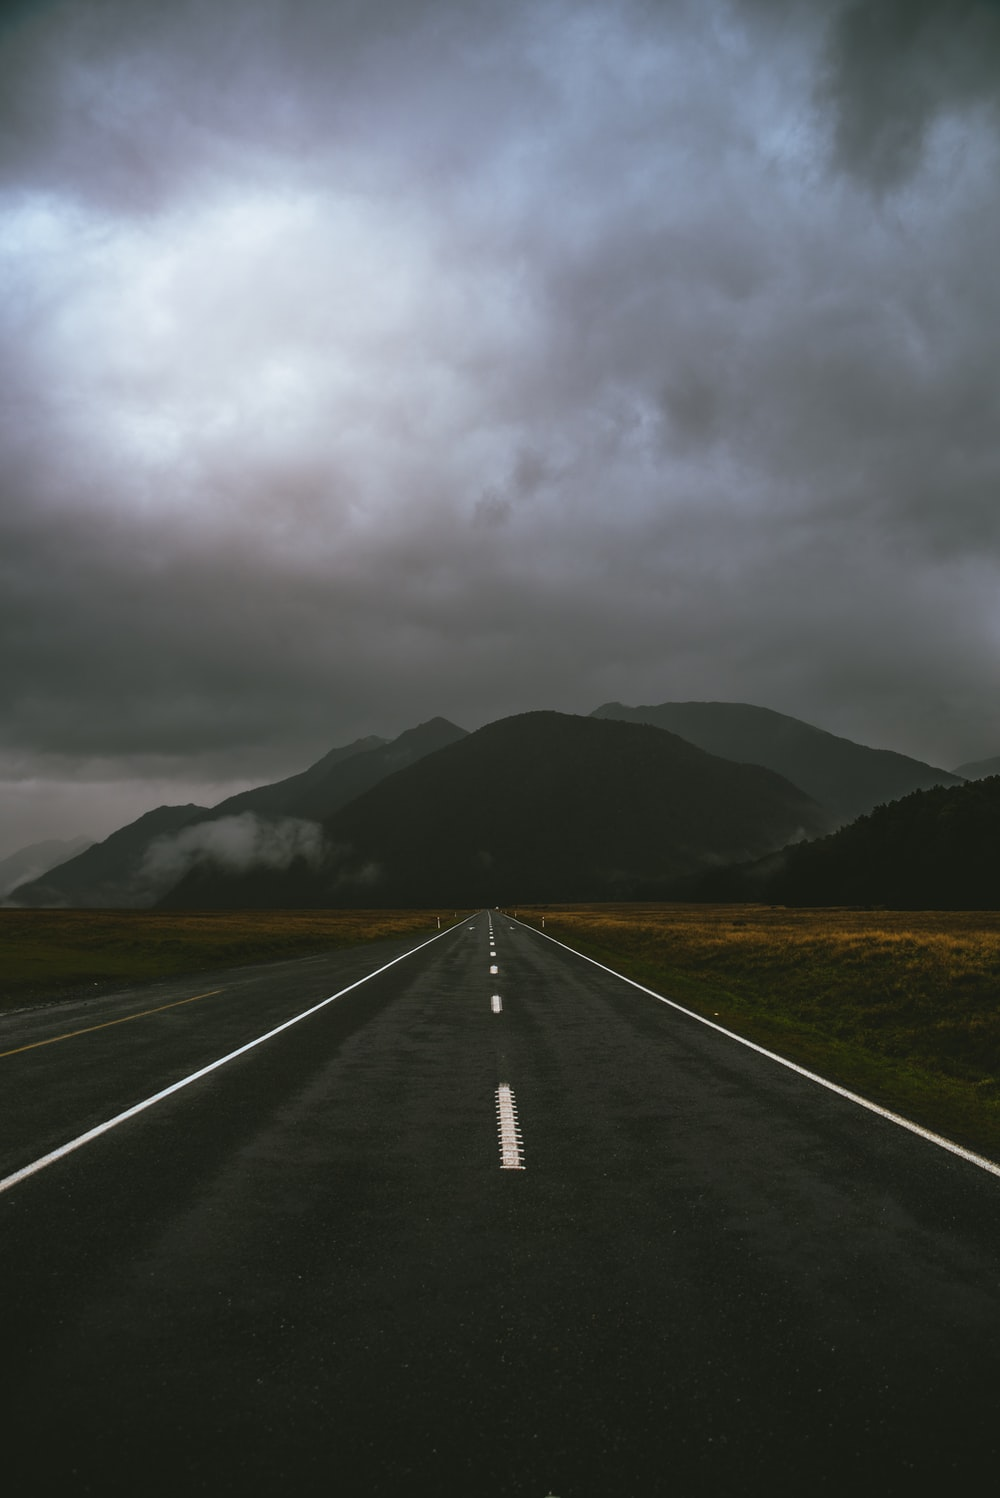 gray road under cloudy sky